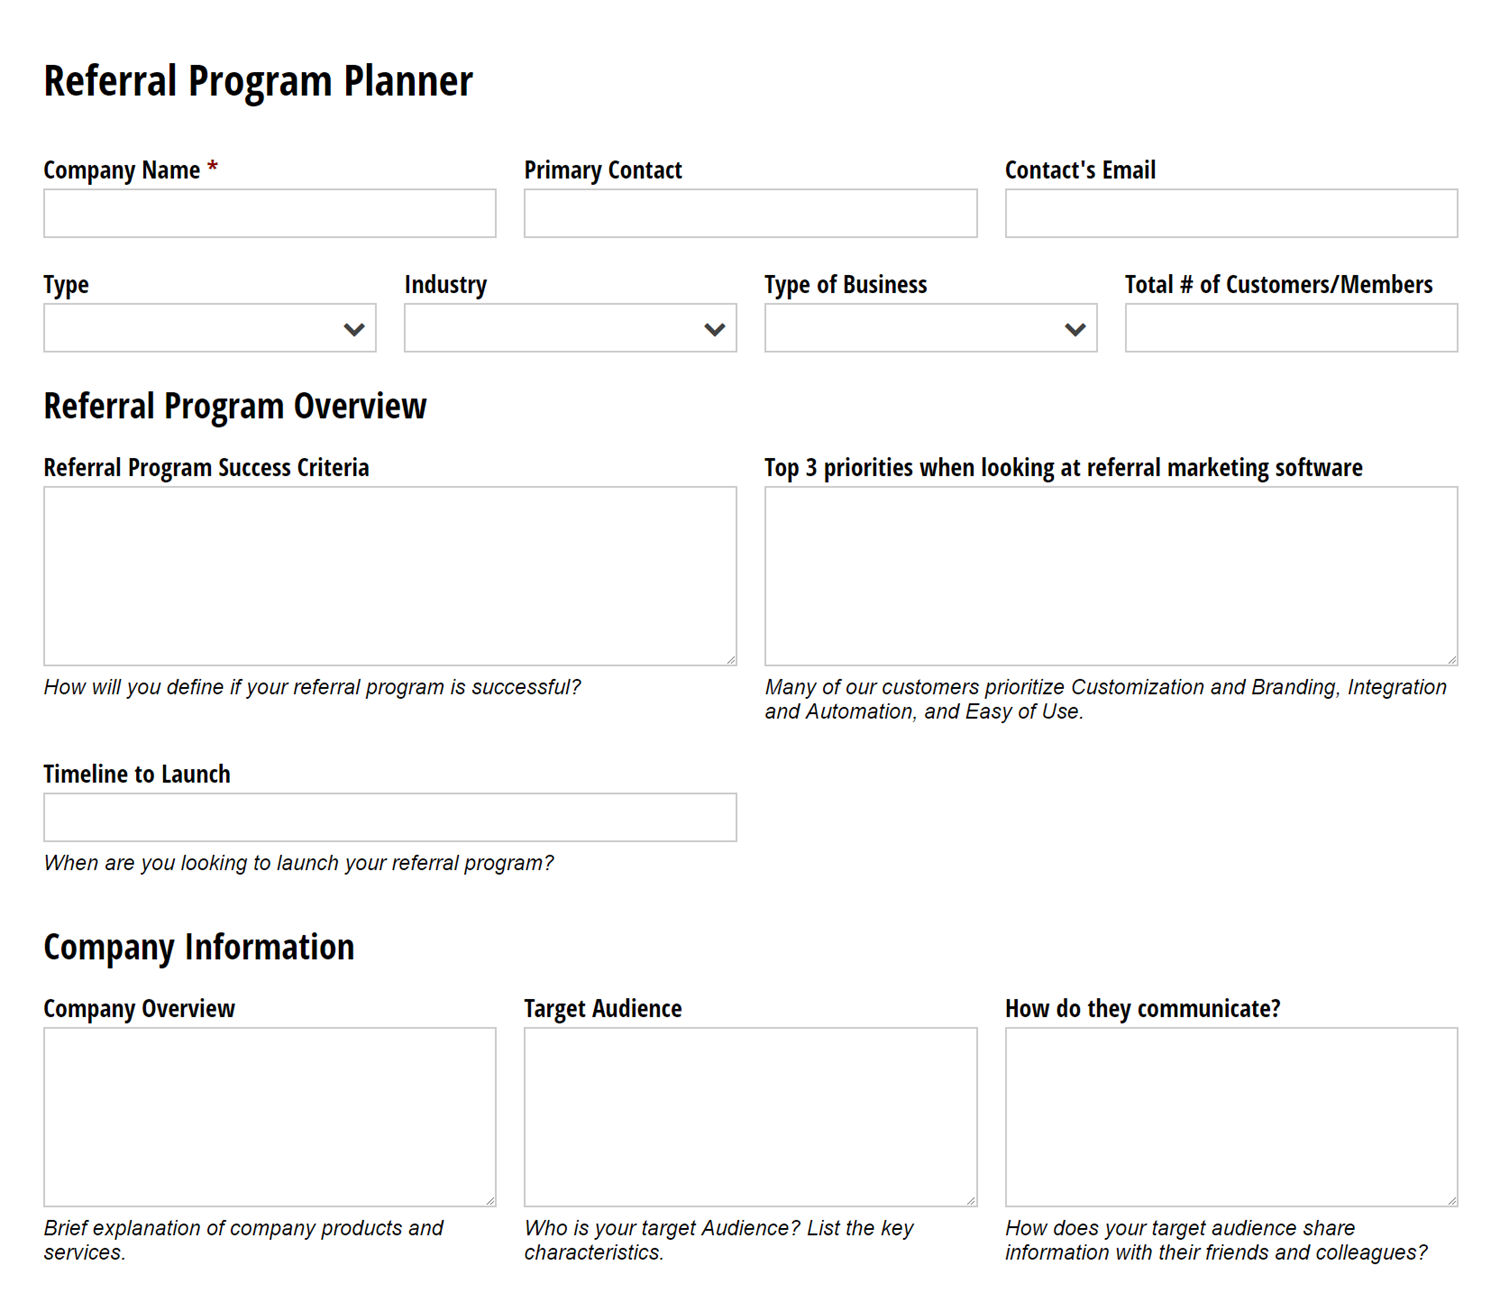 Referral Rock uses Cognito Forms for their Referral Program Planner.